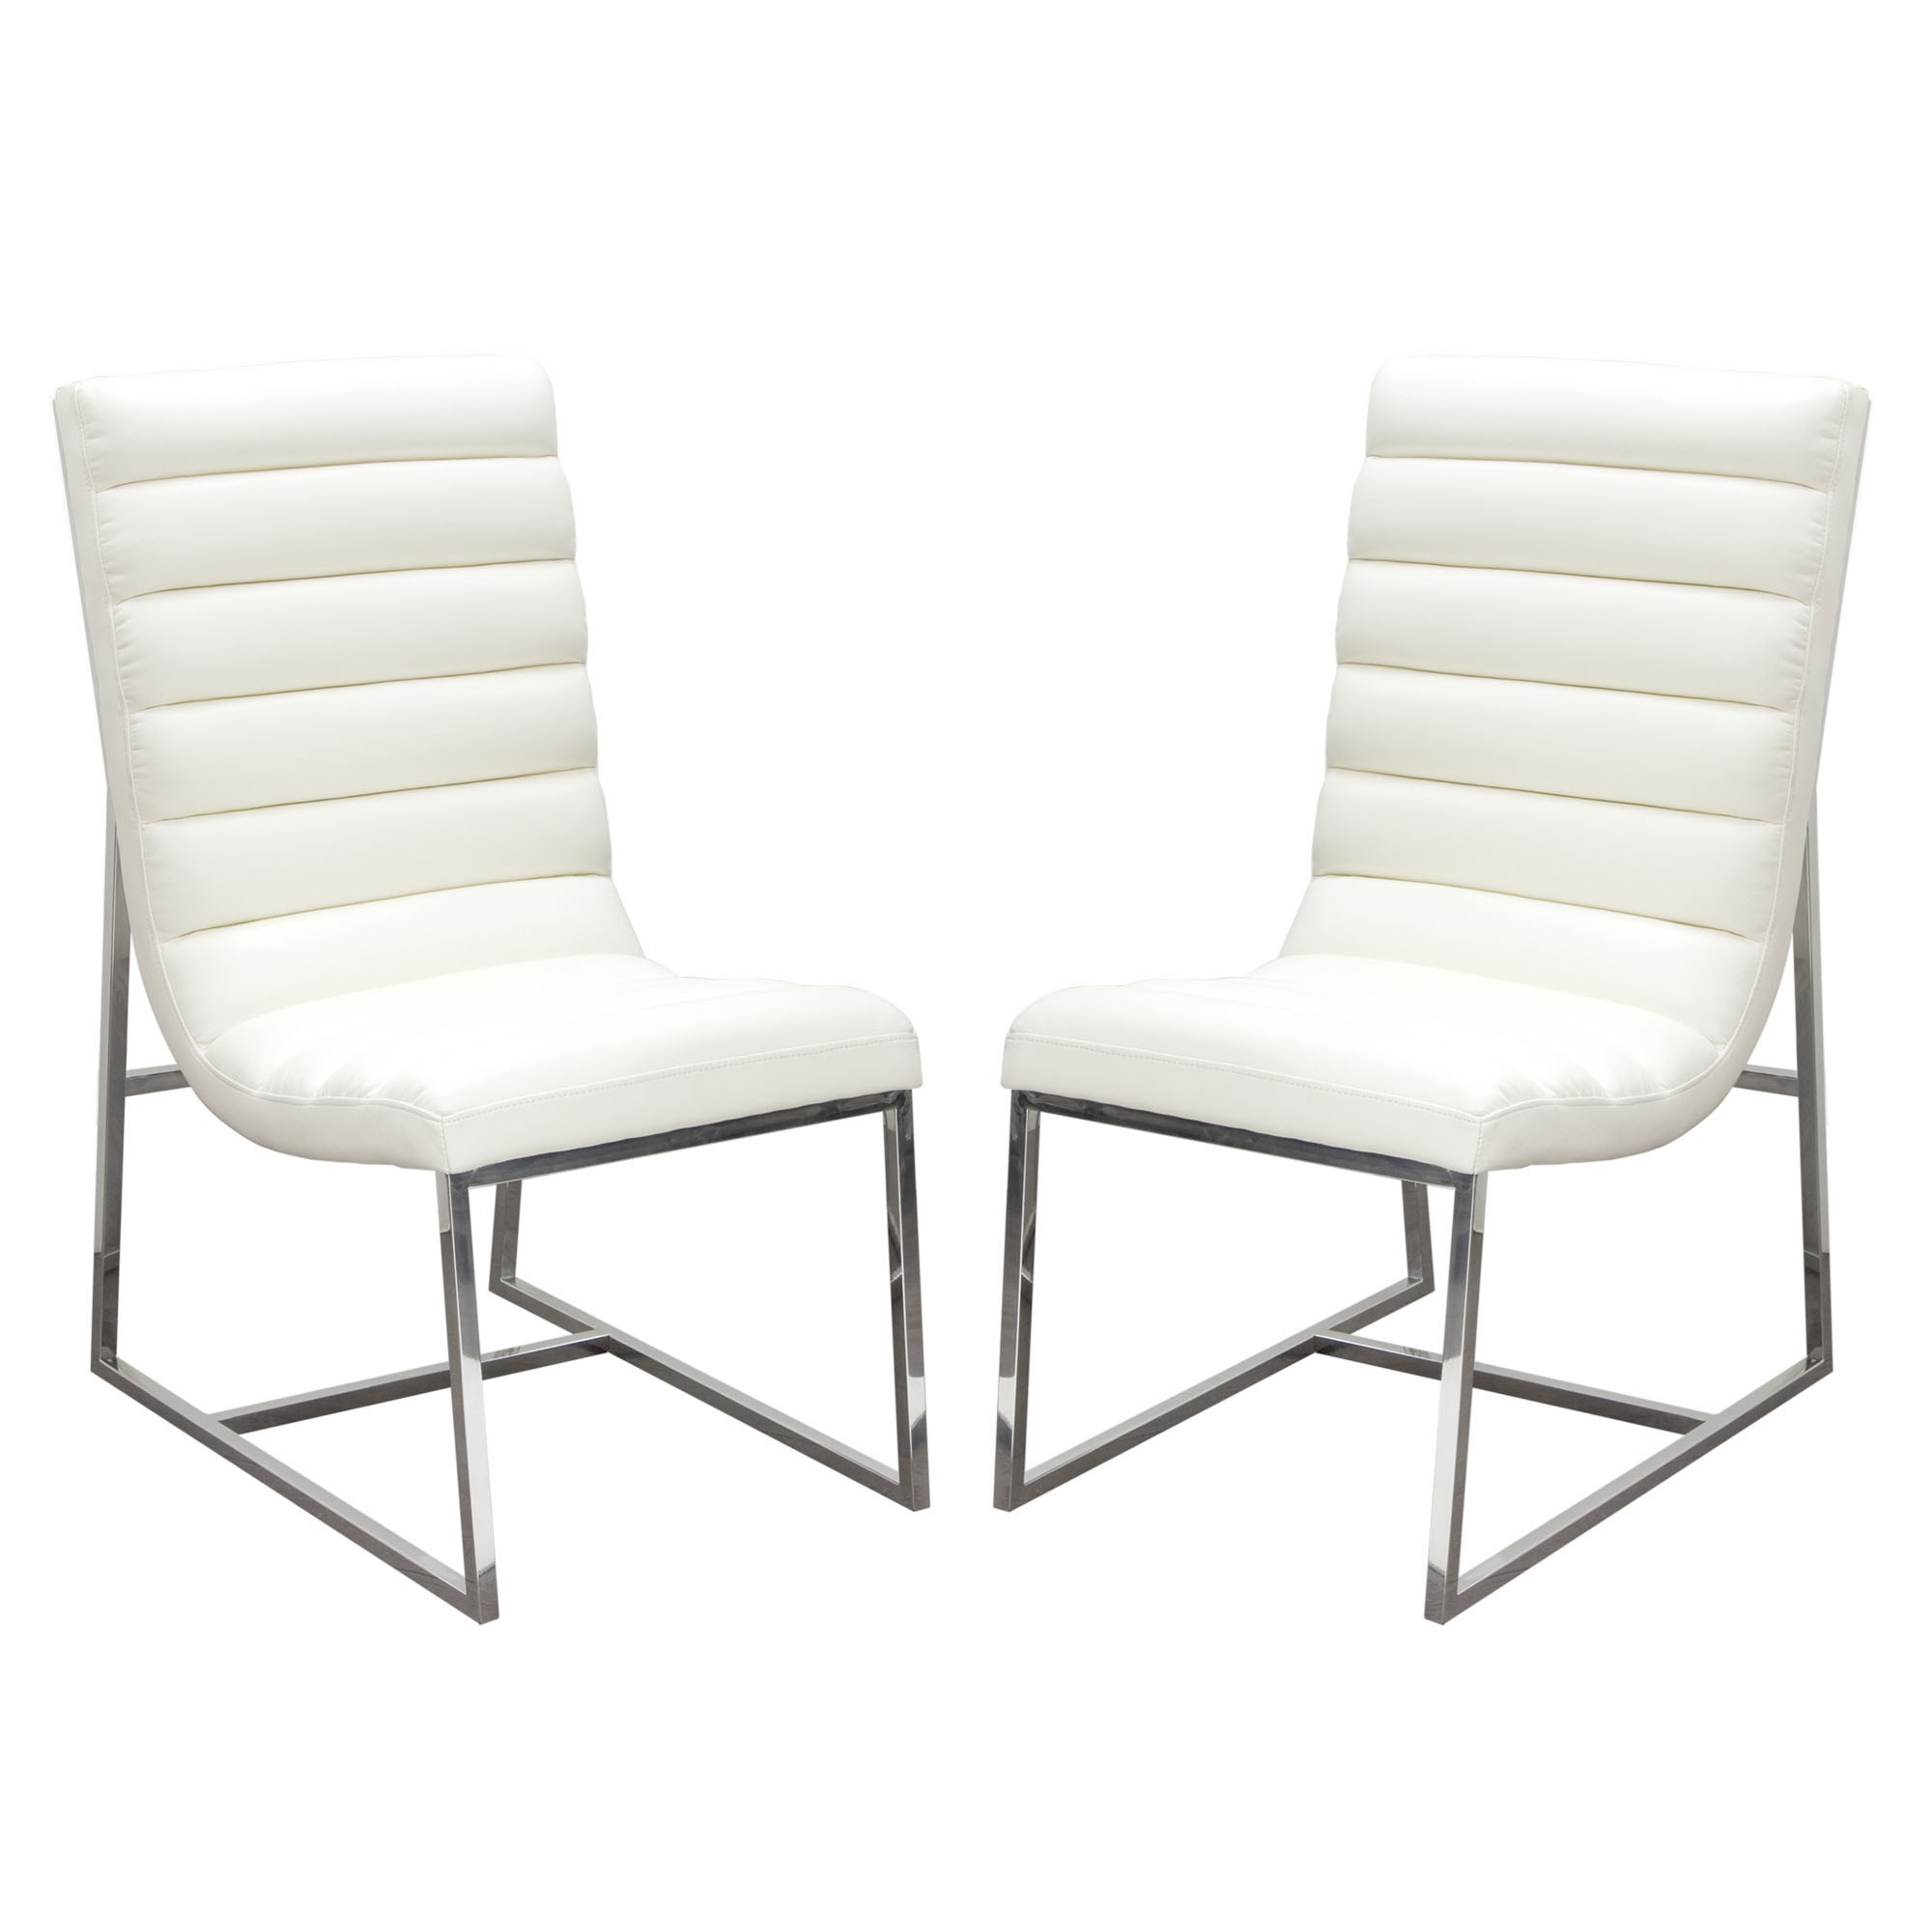 Diamond Sofa Bardot White Set of Two Dining Side Chairs - Item Number: BARDOTDCWH2